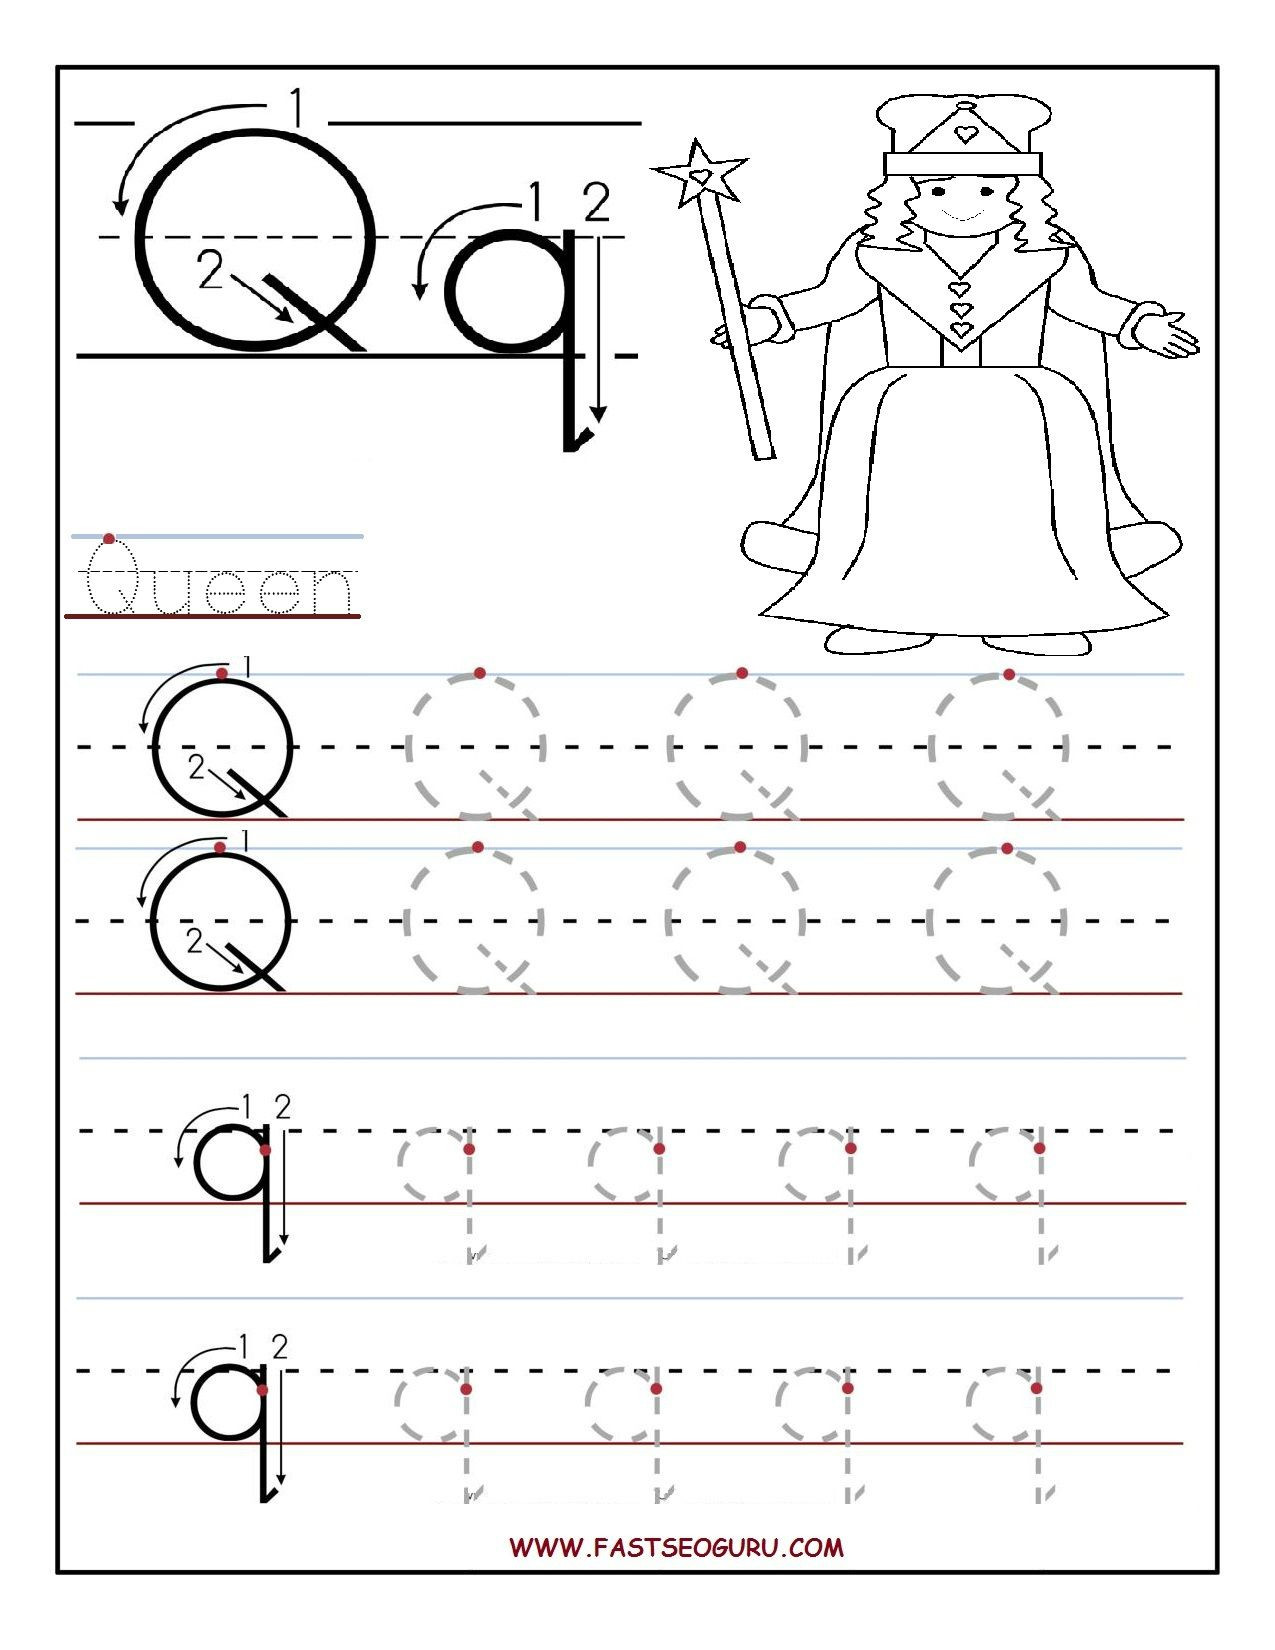 Letter Q Preschool Worksheets Printable Letter Q Tracing Worksheets for Preschool